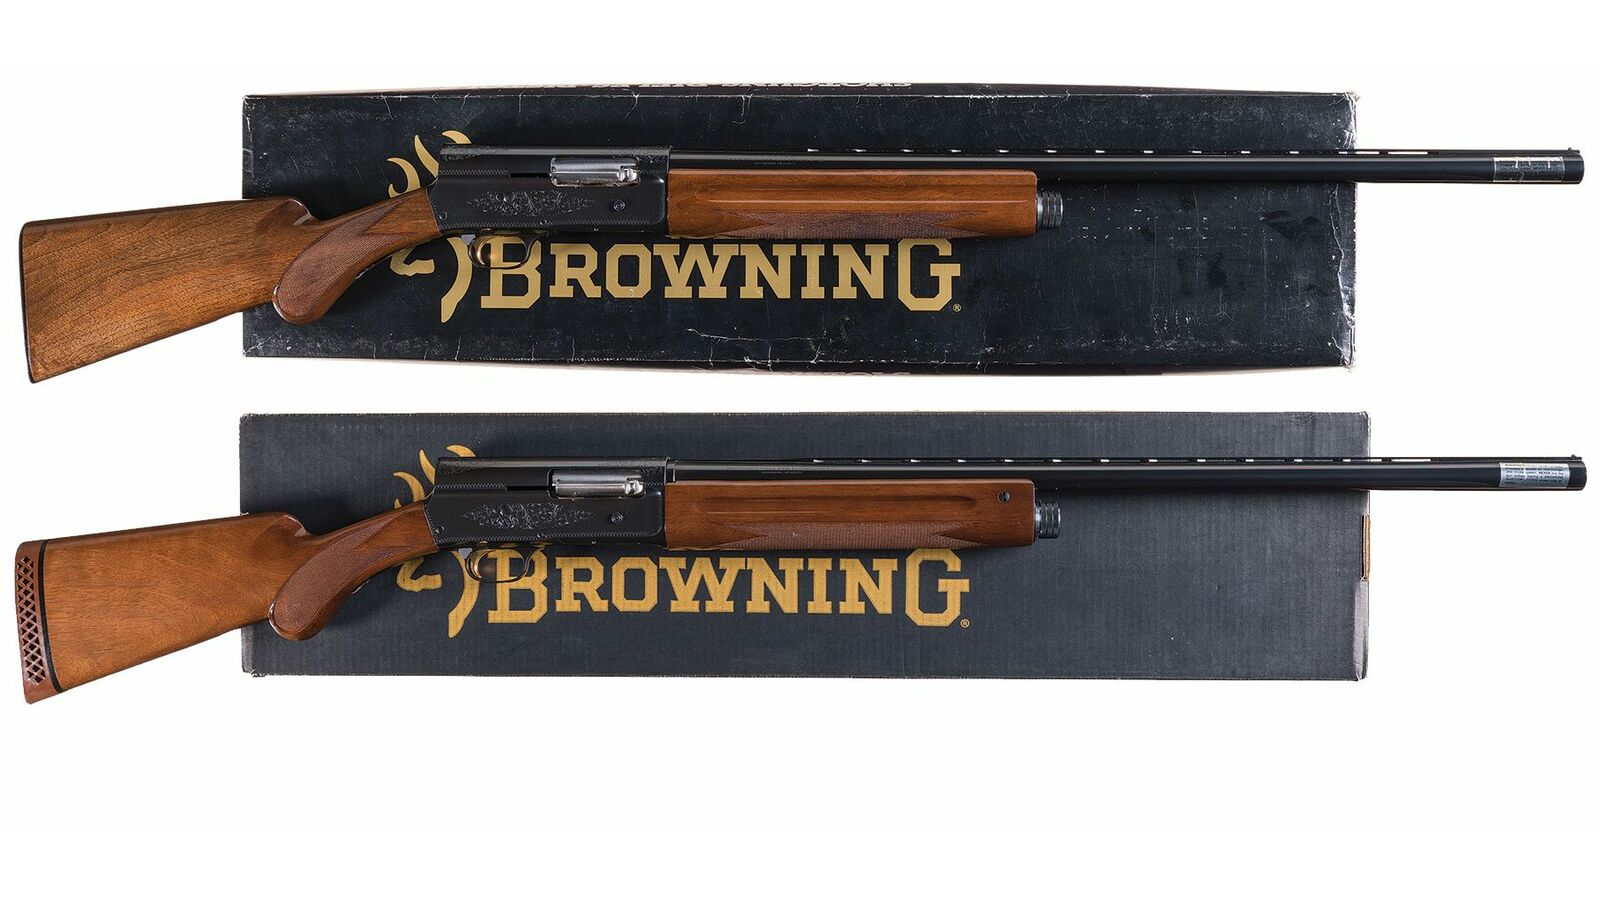 Two Engraved Browning Auto 5 Semi-Automatic Shotguns with Boxes